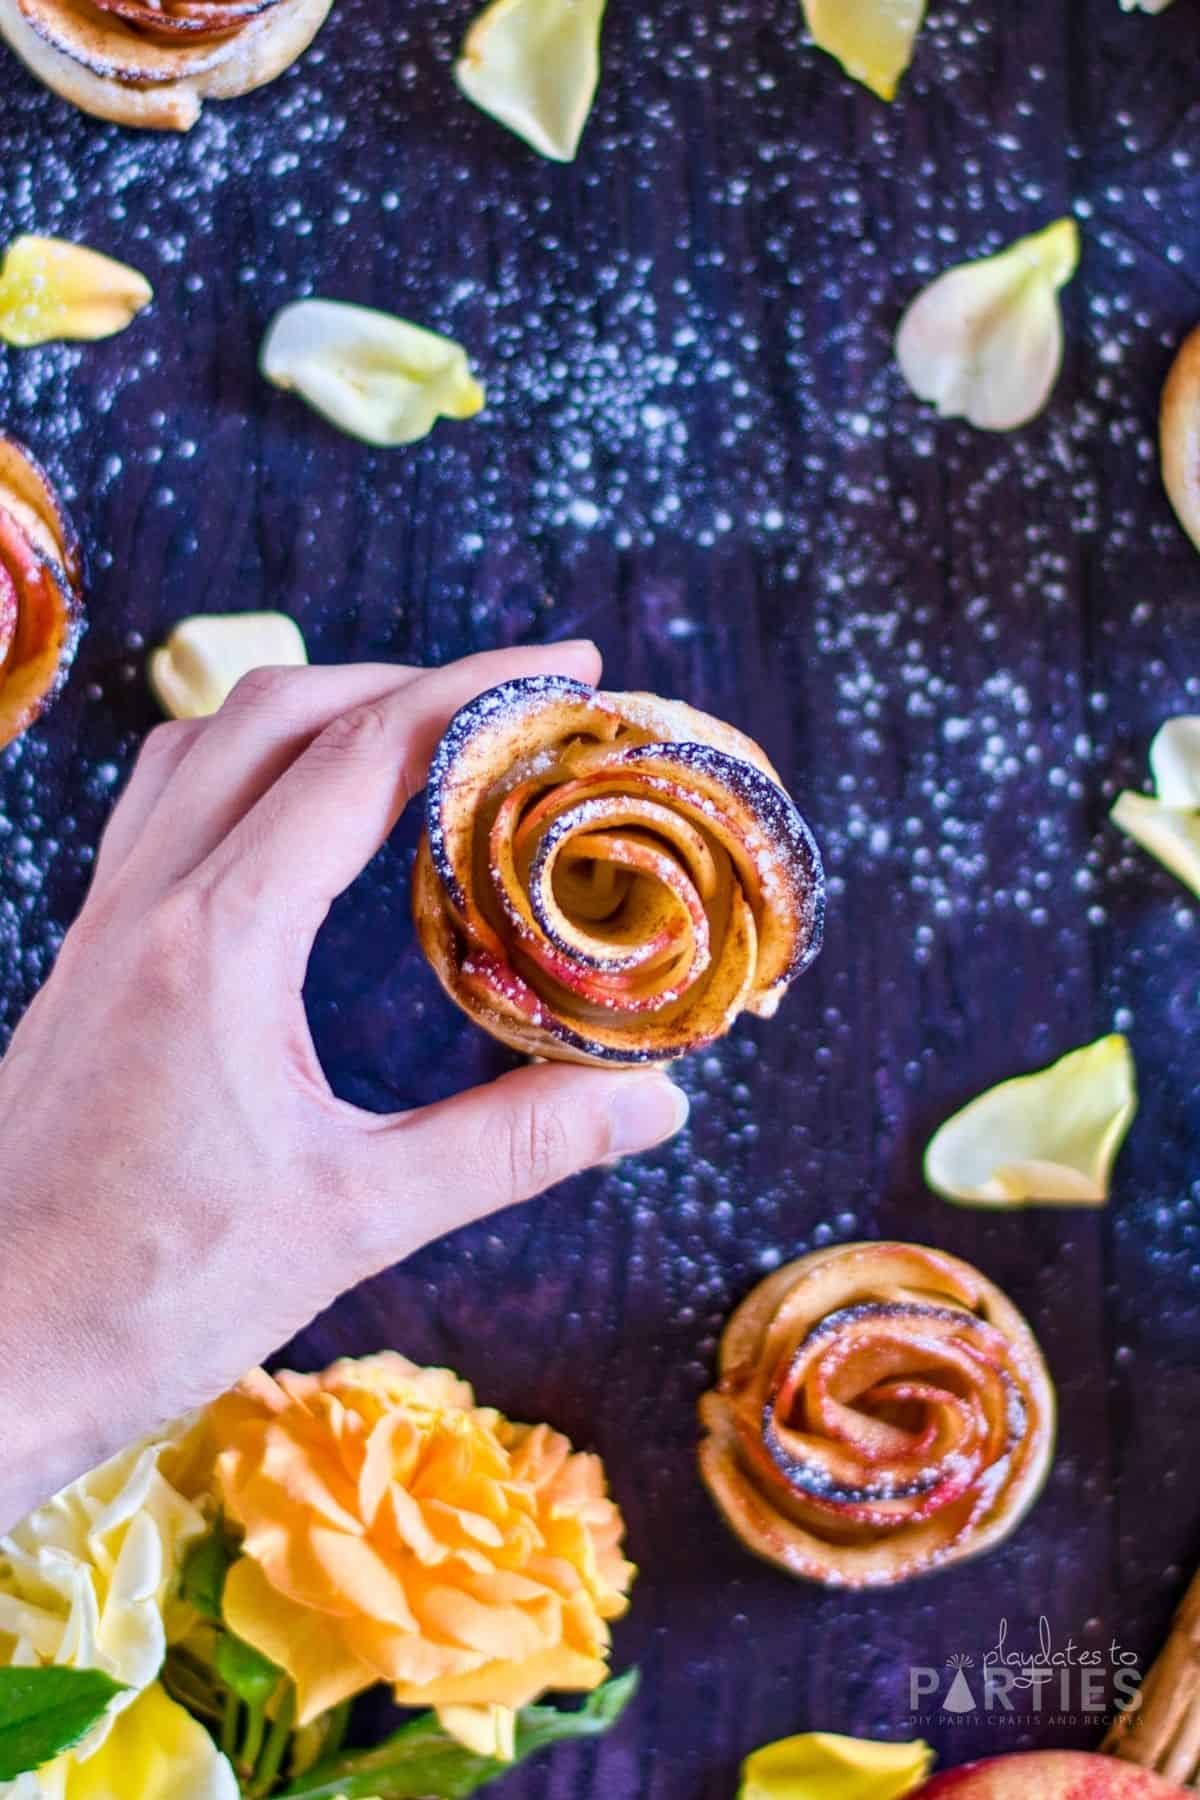 overhead view of a woman's hand holding a rose shaped mini apple tart